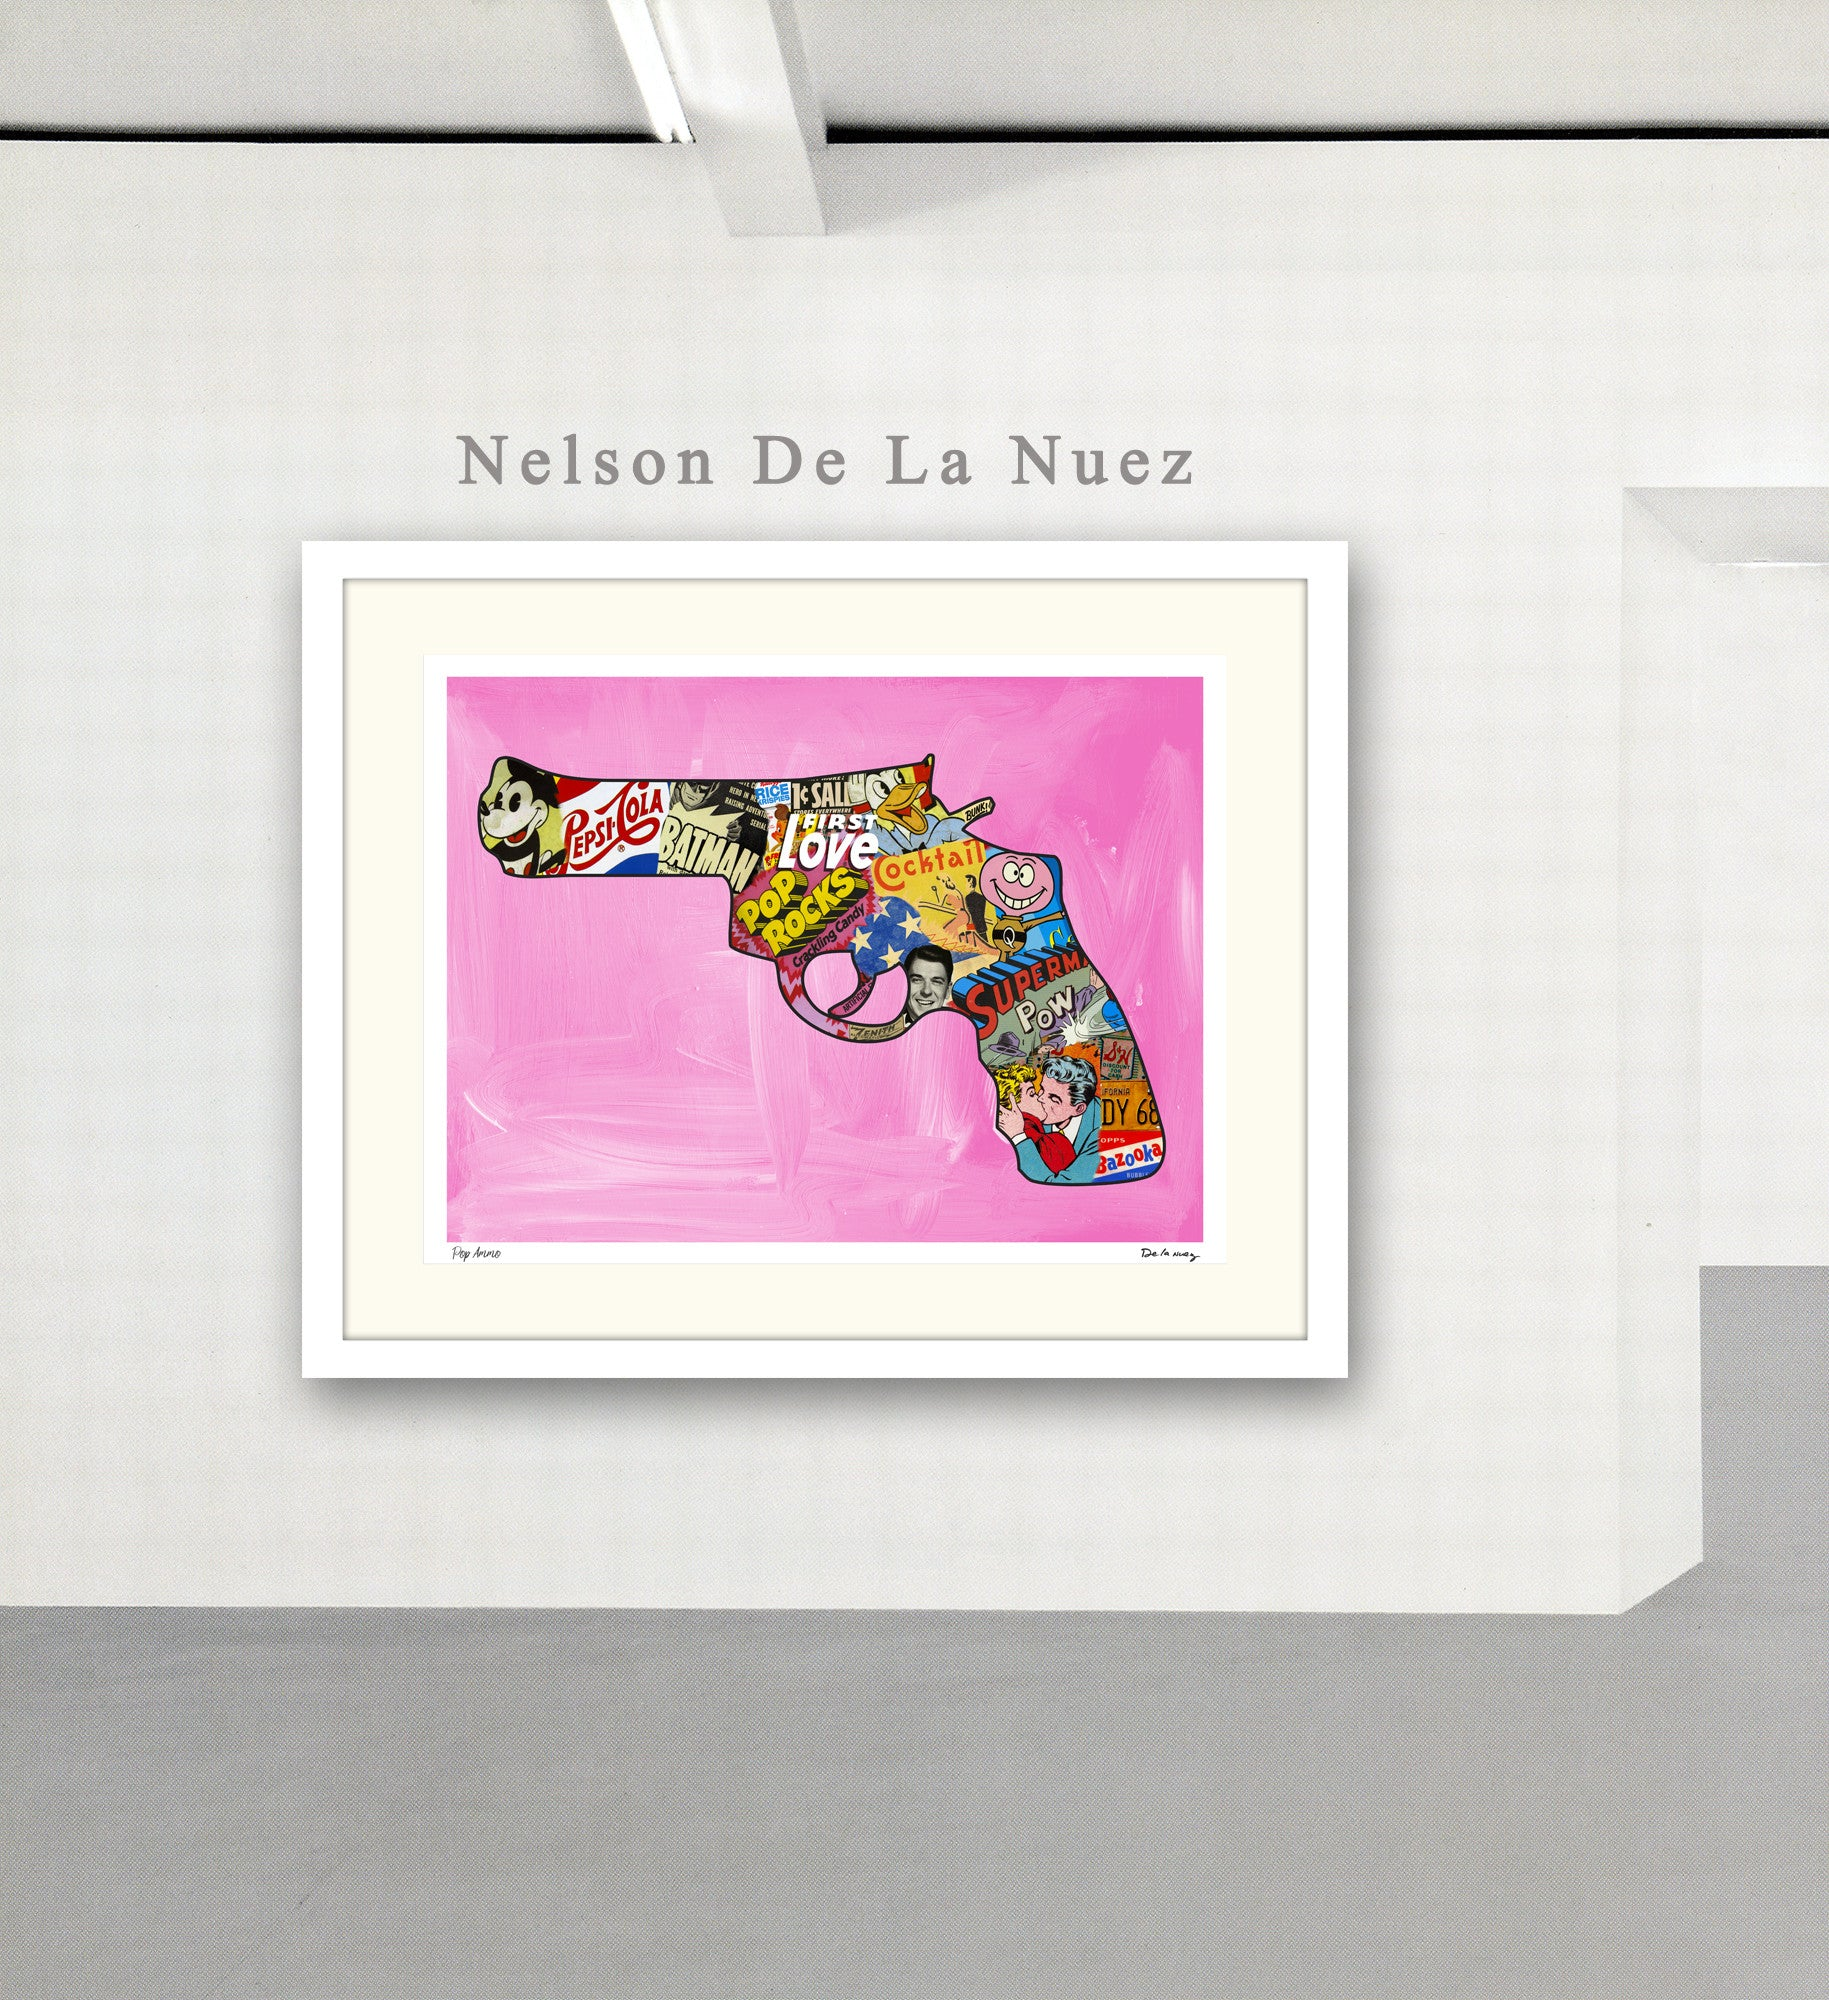 Pop Ammo pop gun pop culture pop artist Nelson De La Nuez King of Pop Art gun limited edition